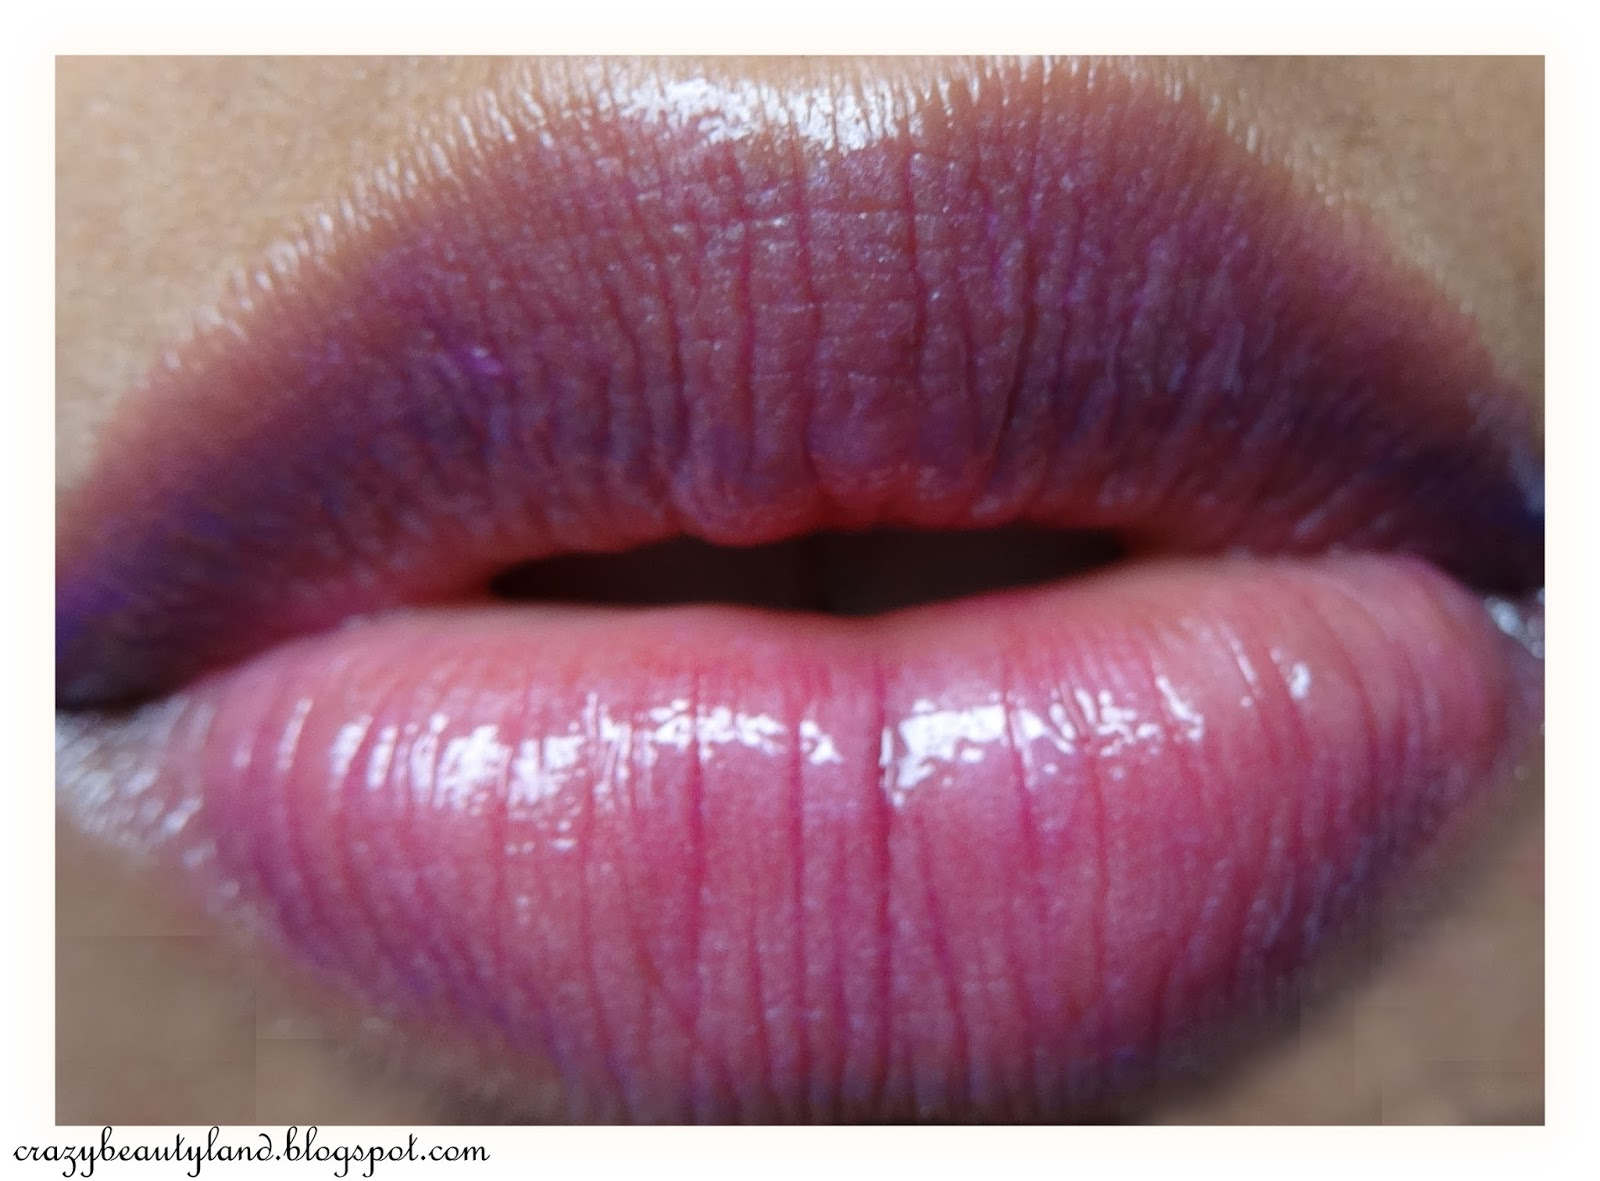 Review of L'Oreal Paris Shine Caresse Lip Color in the shade 603 Milady. Dupe of YSL Glossy Stains. Lip Swatches of Milady